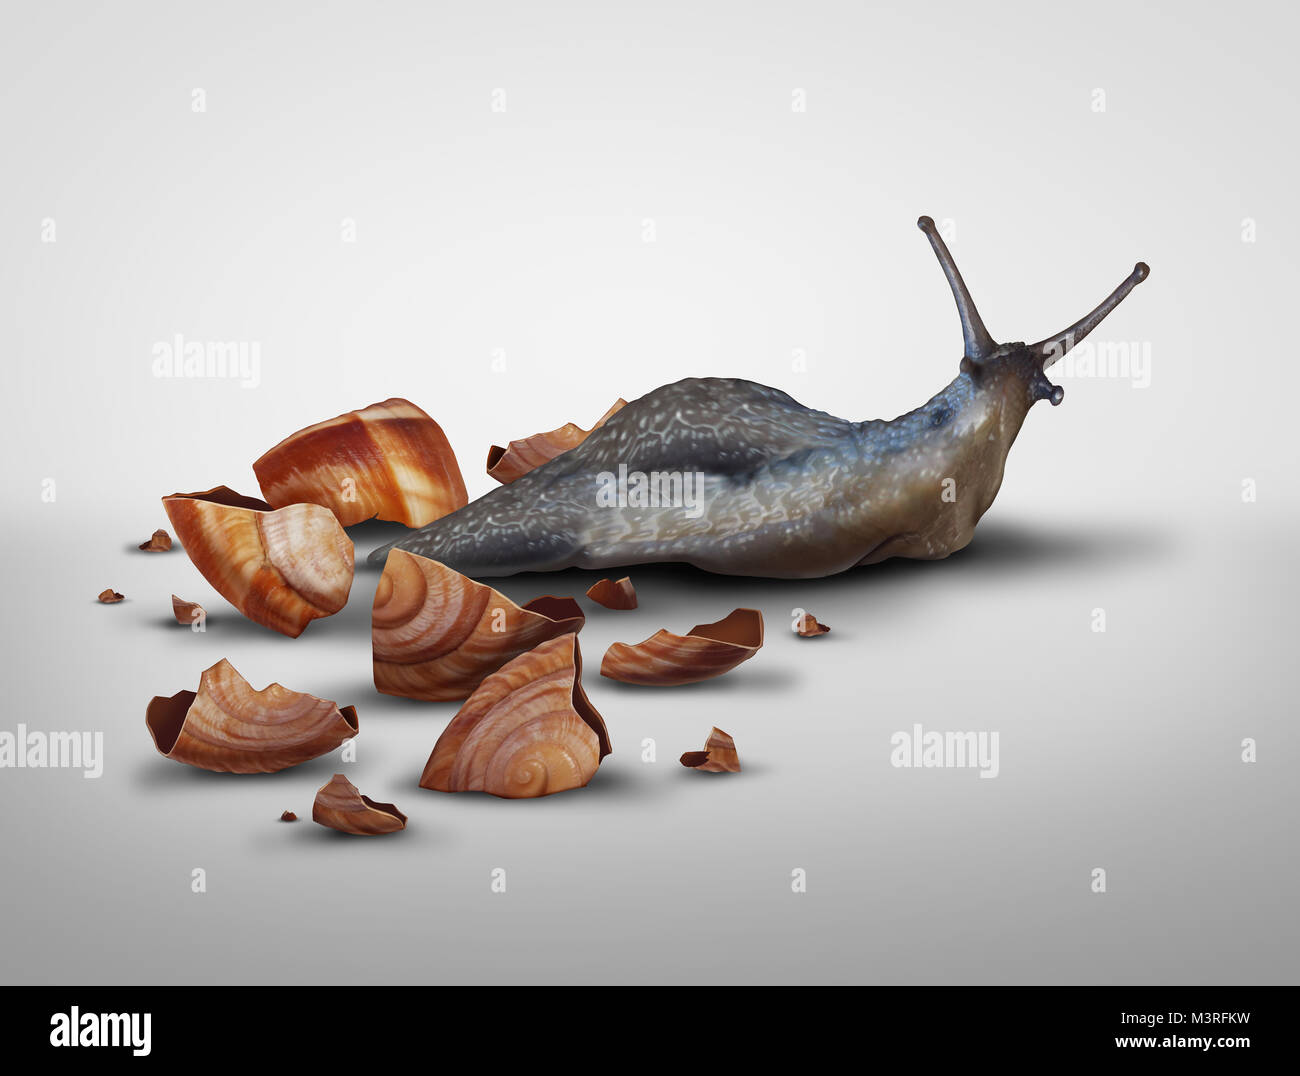 Life in transition and change your image concept or lose baggage concept as a snail that has lost its shell in a - Stock Image